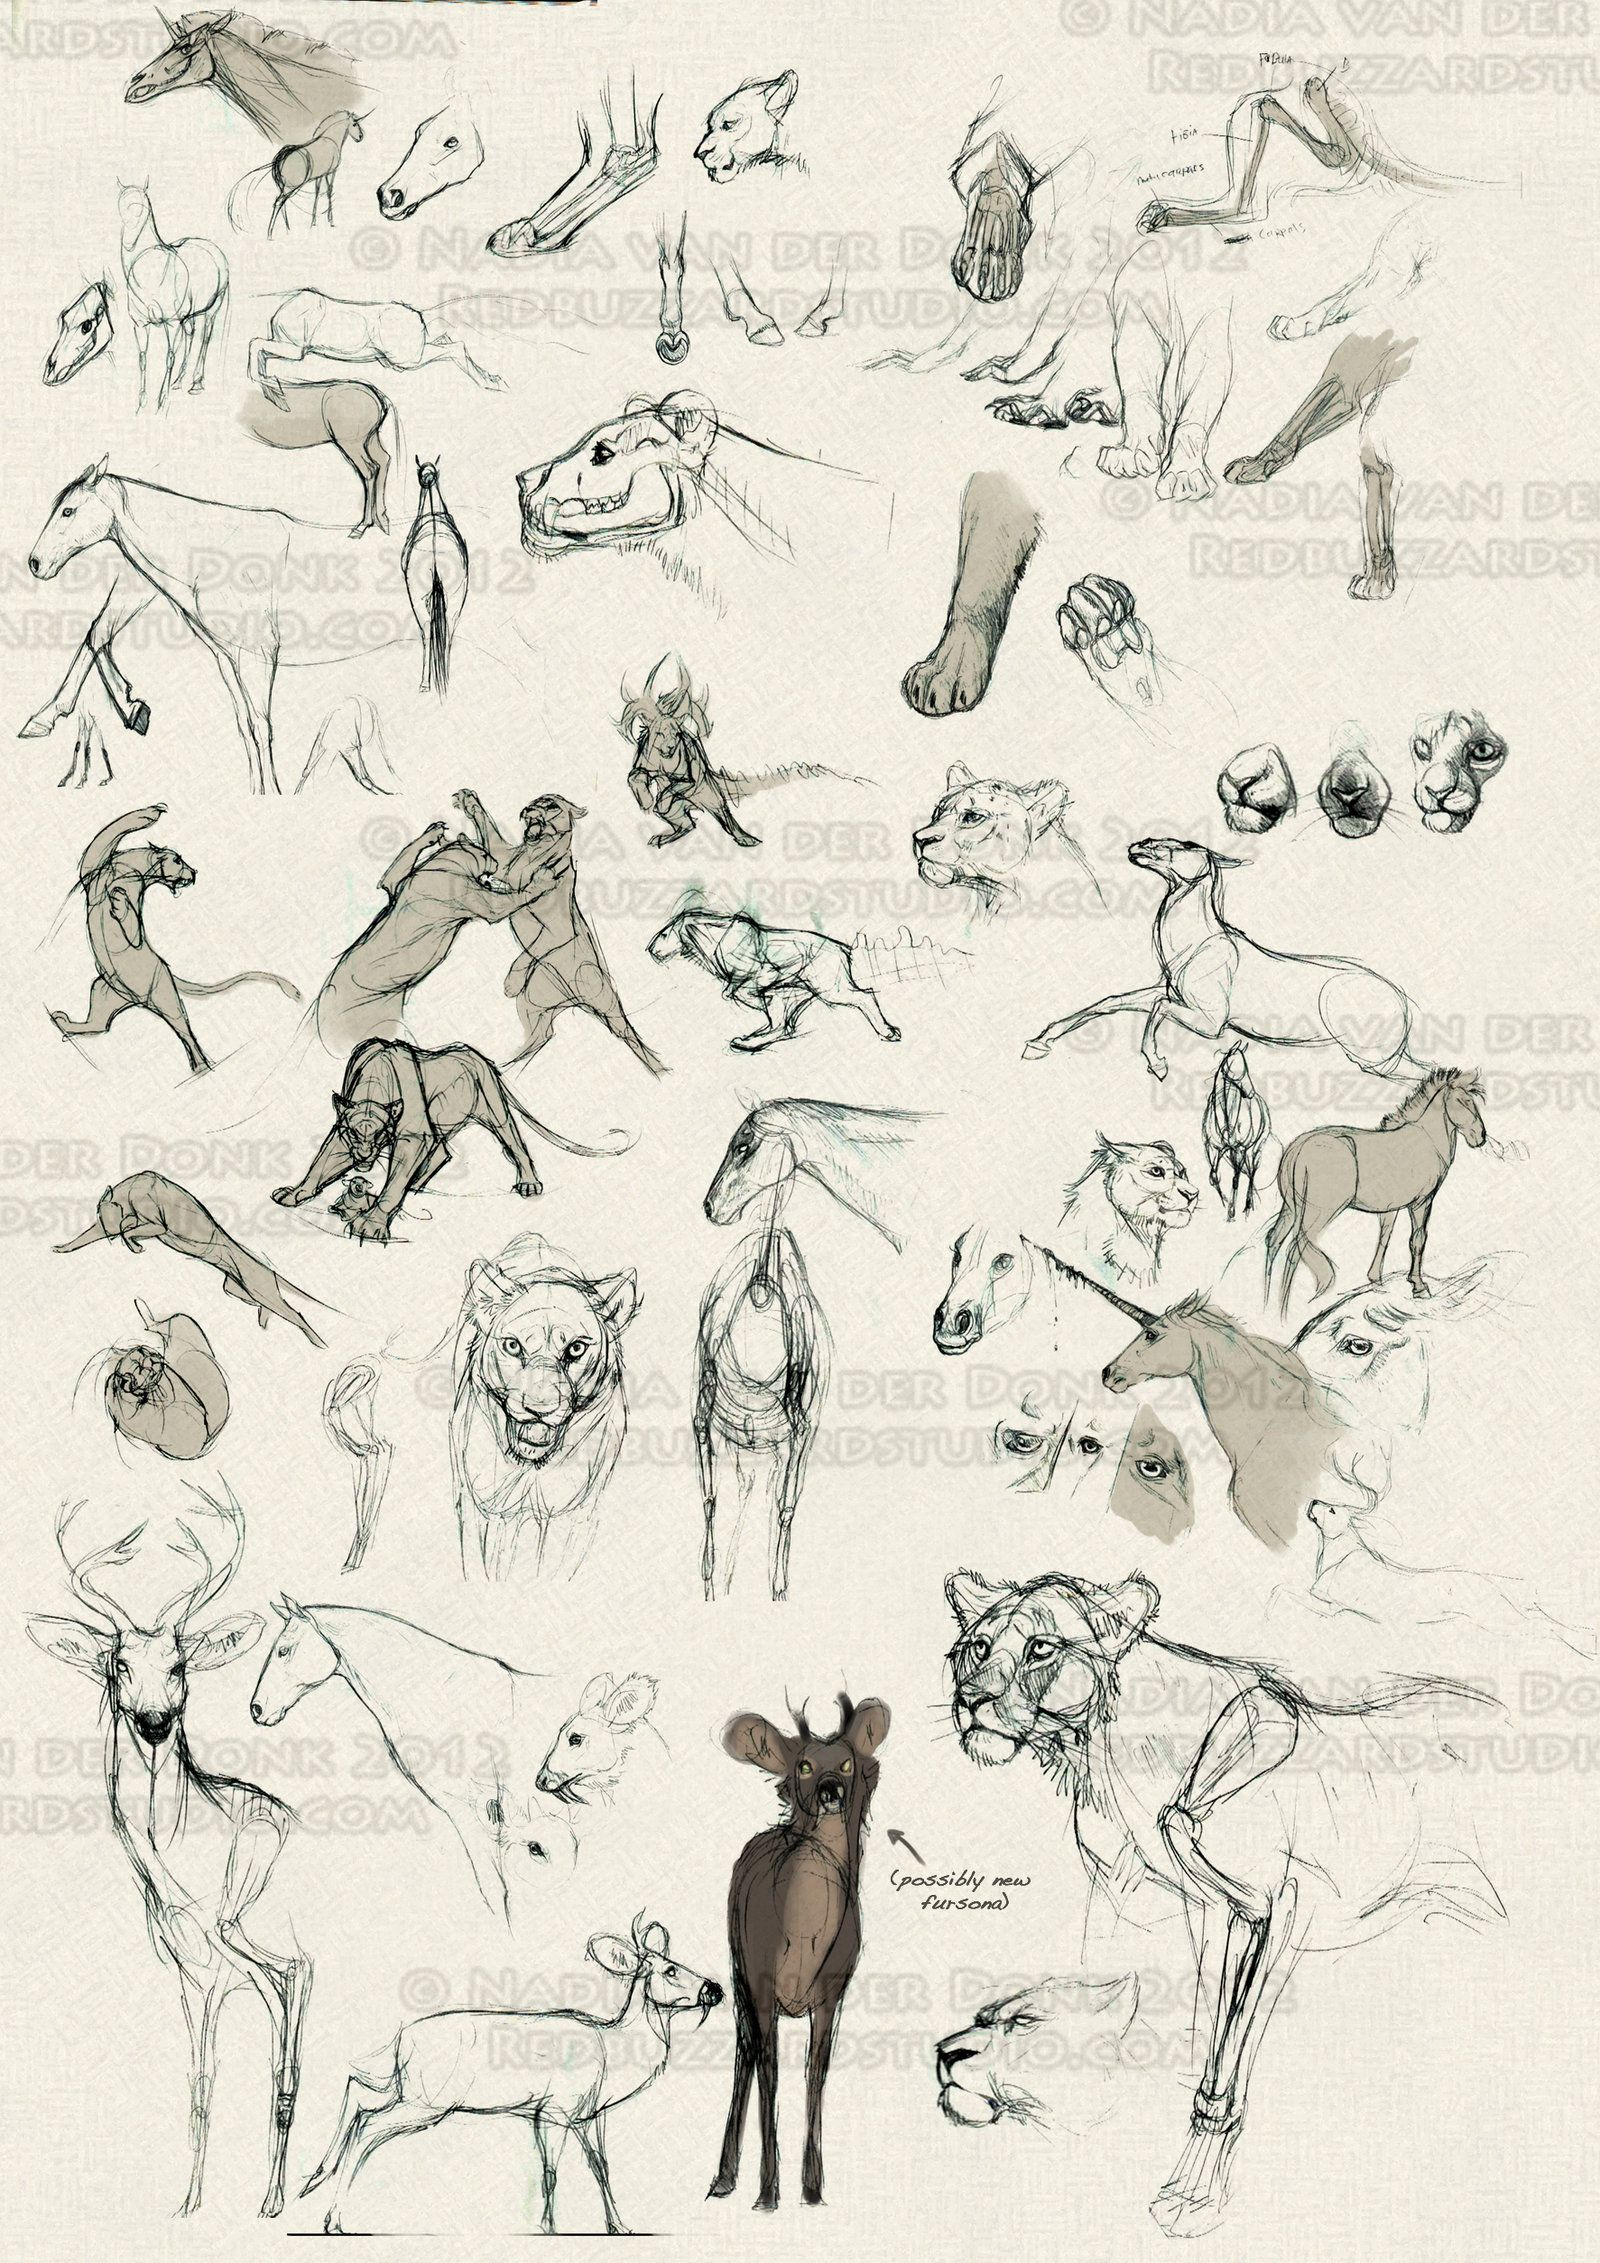 Sketchbook Dump 4 by NadiavanderDonk | Sketch de Animais | Pinterest ...